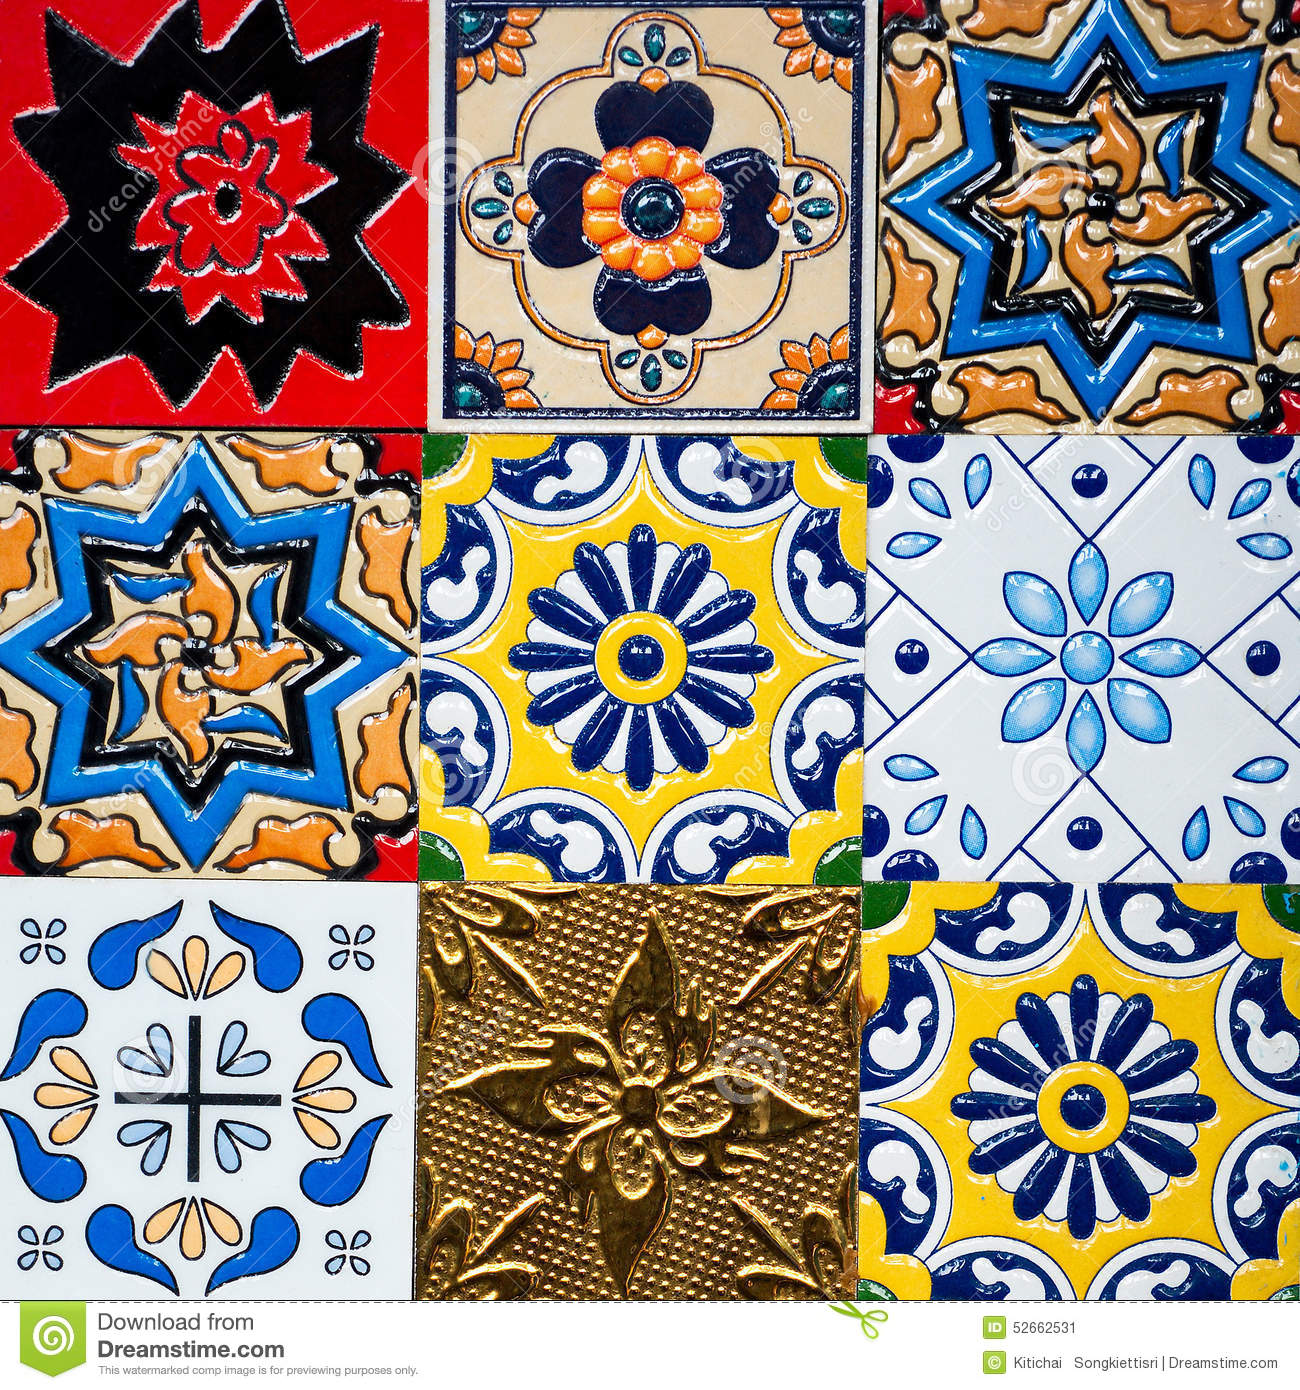 Beautiful old wall ceramic tiles patterns handcraft from thailand beautiful old wall ceramic tiles patterns handcraft from thailand public dailygadgetfo Images